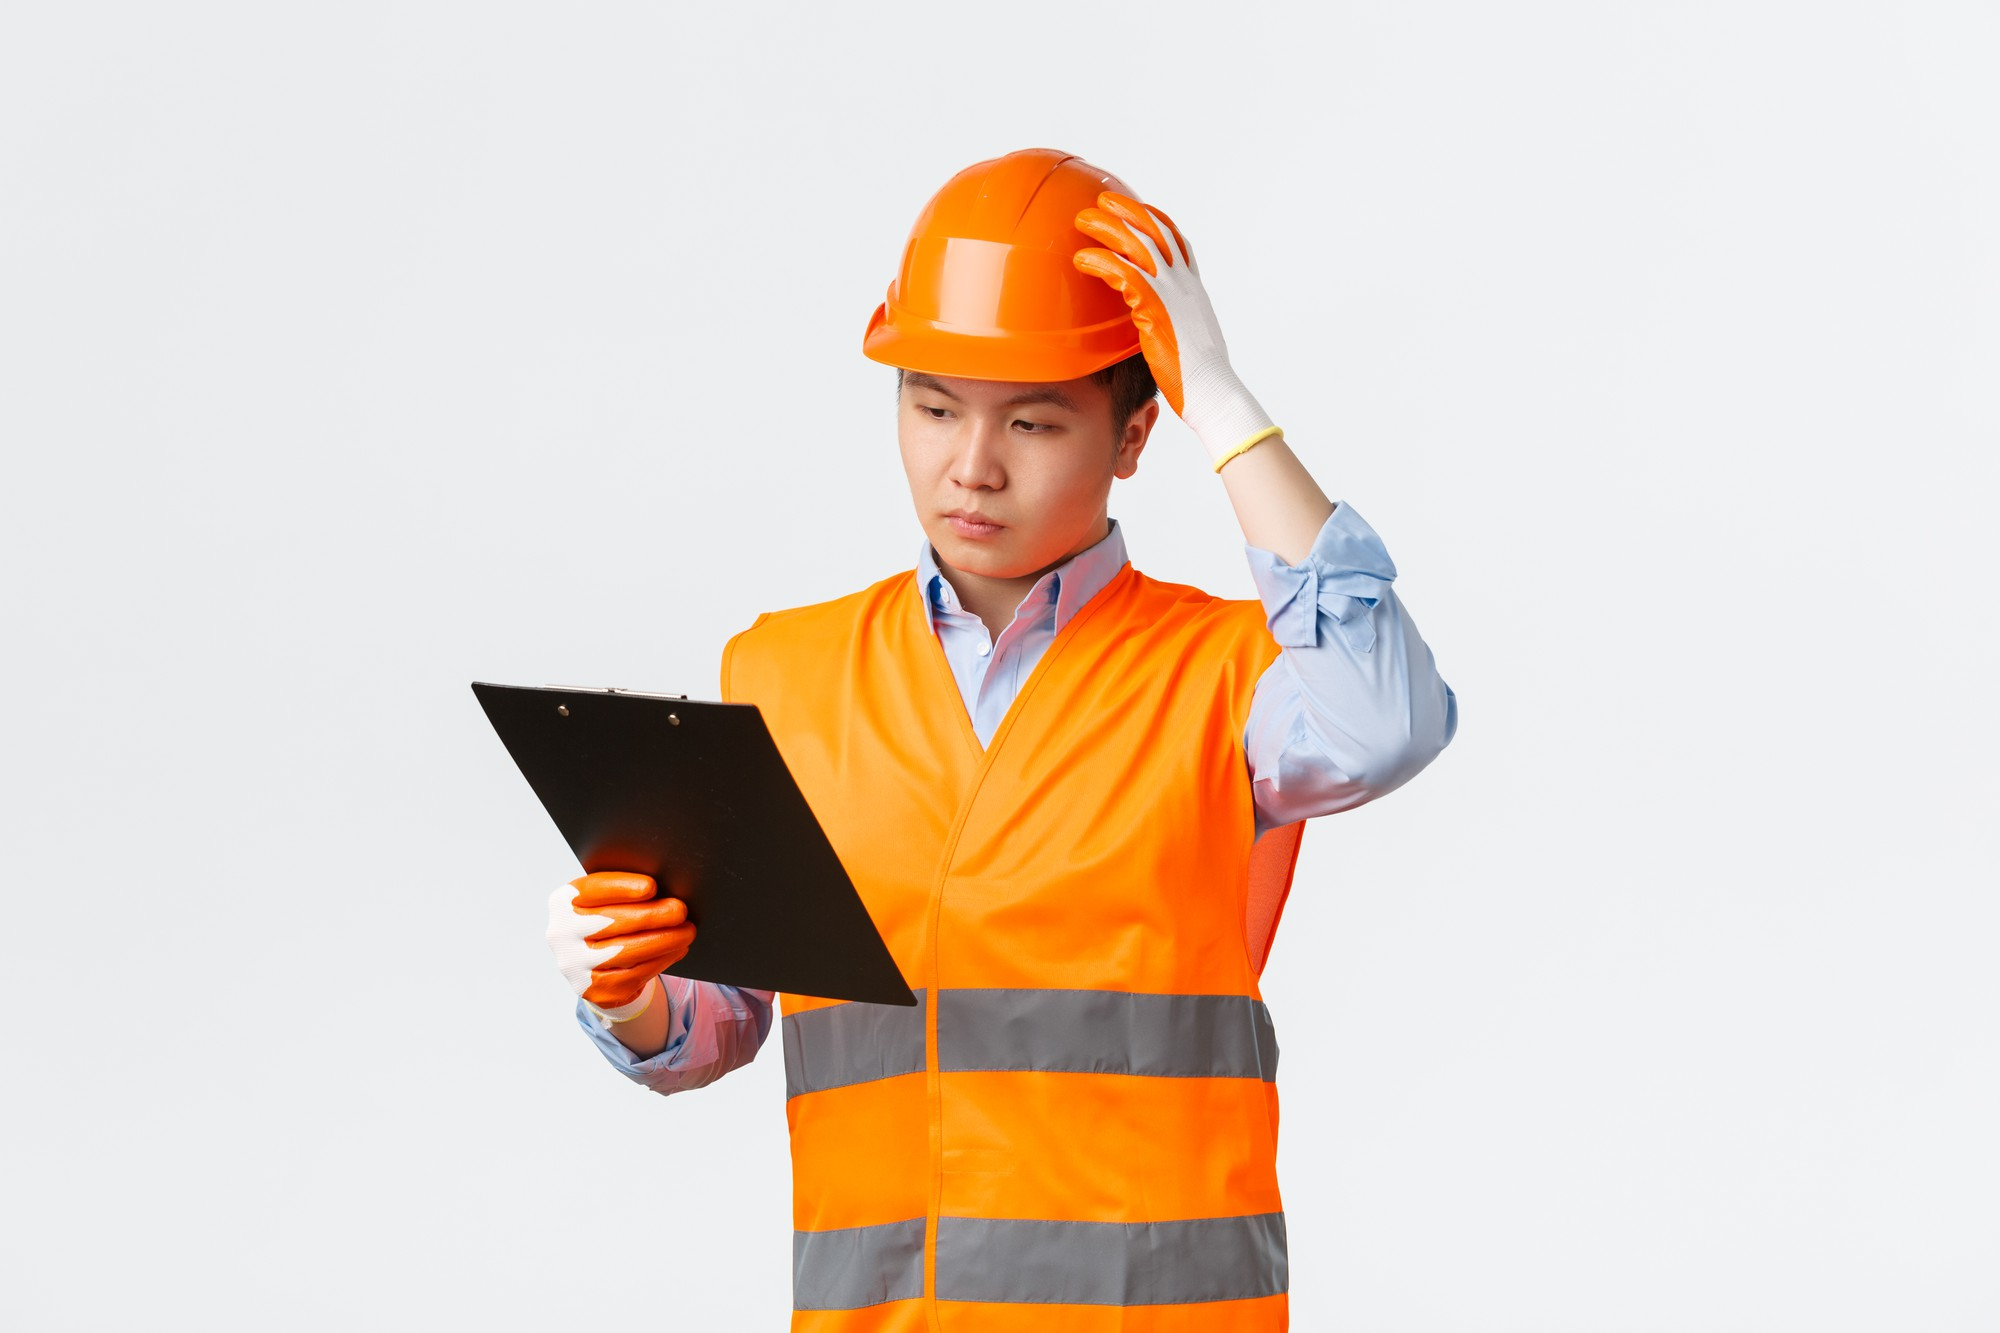 young engineer looking at clipboard holding hard hat